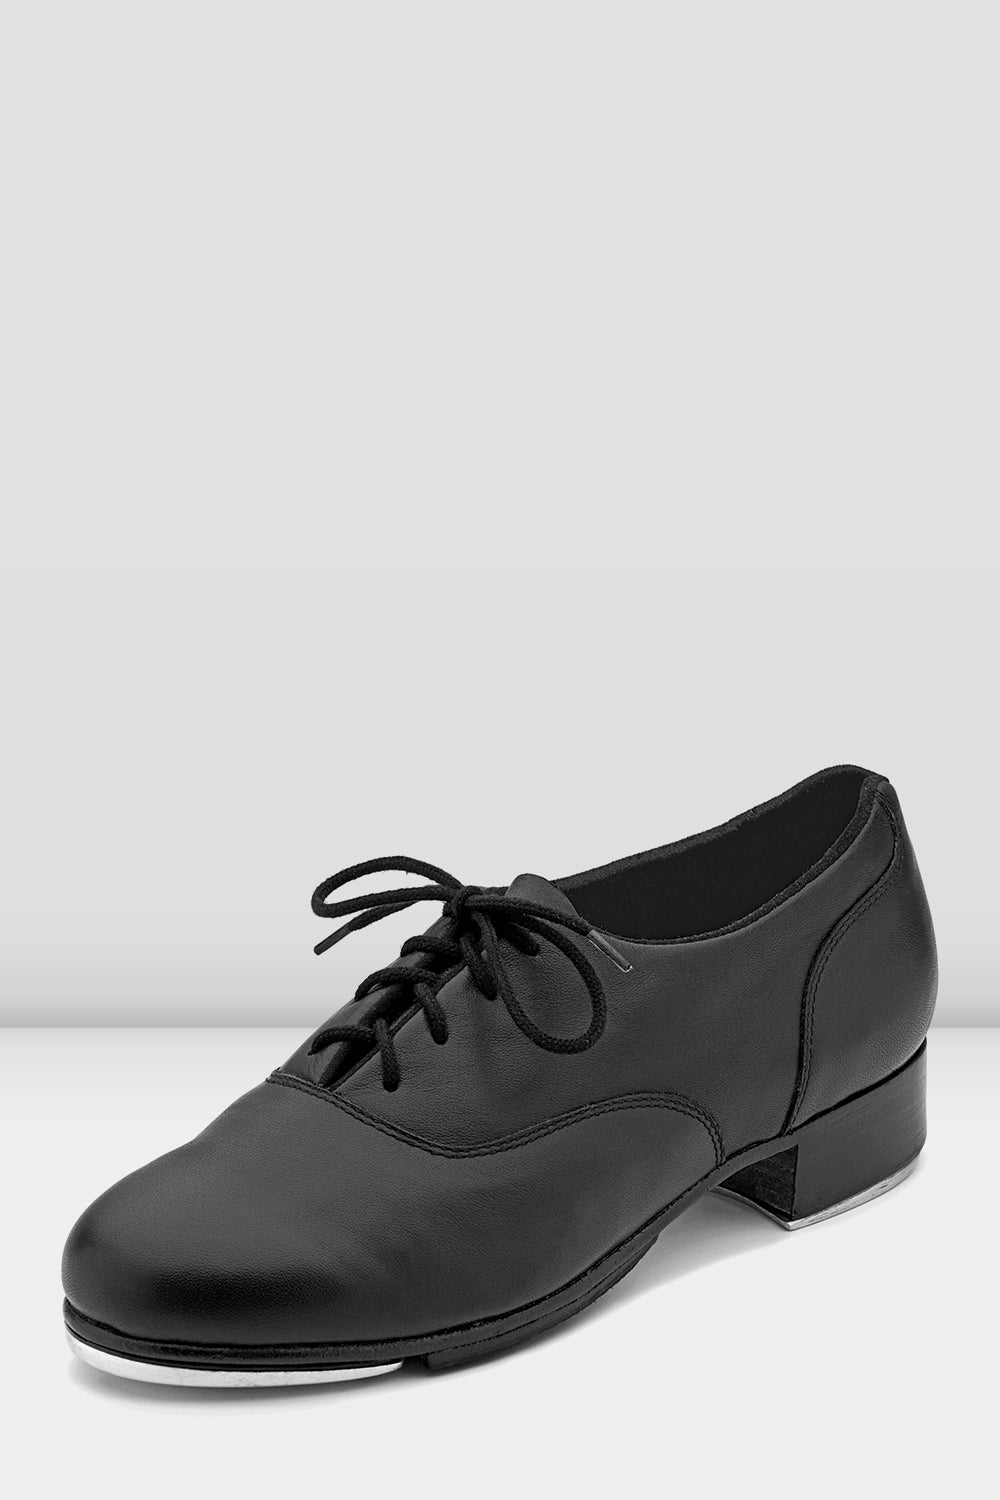 Ladies Respect Leather Tap Shoes